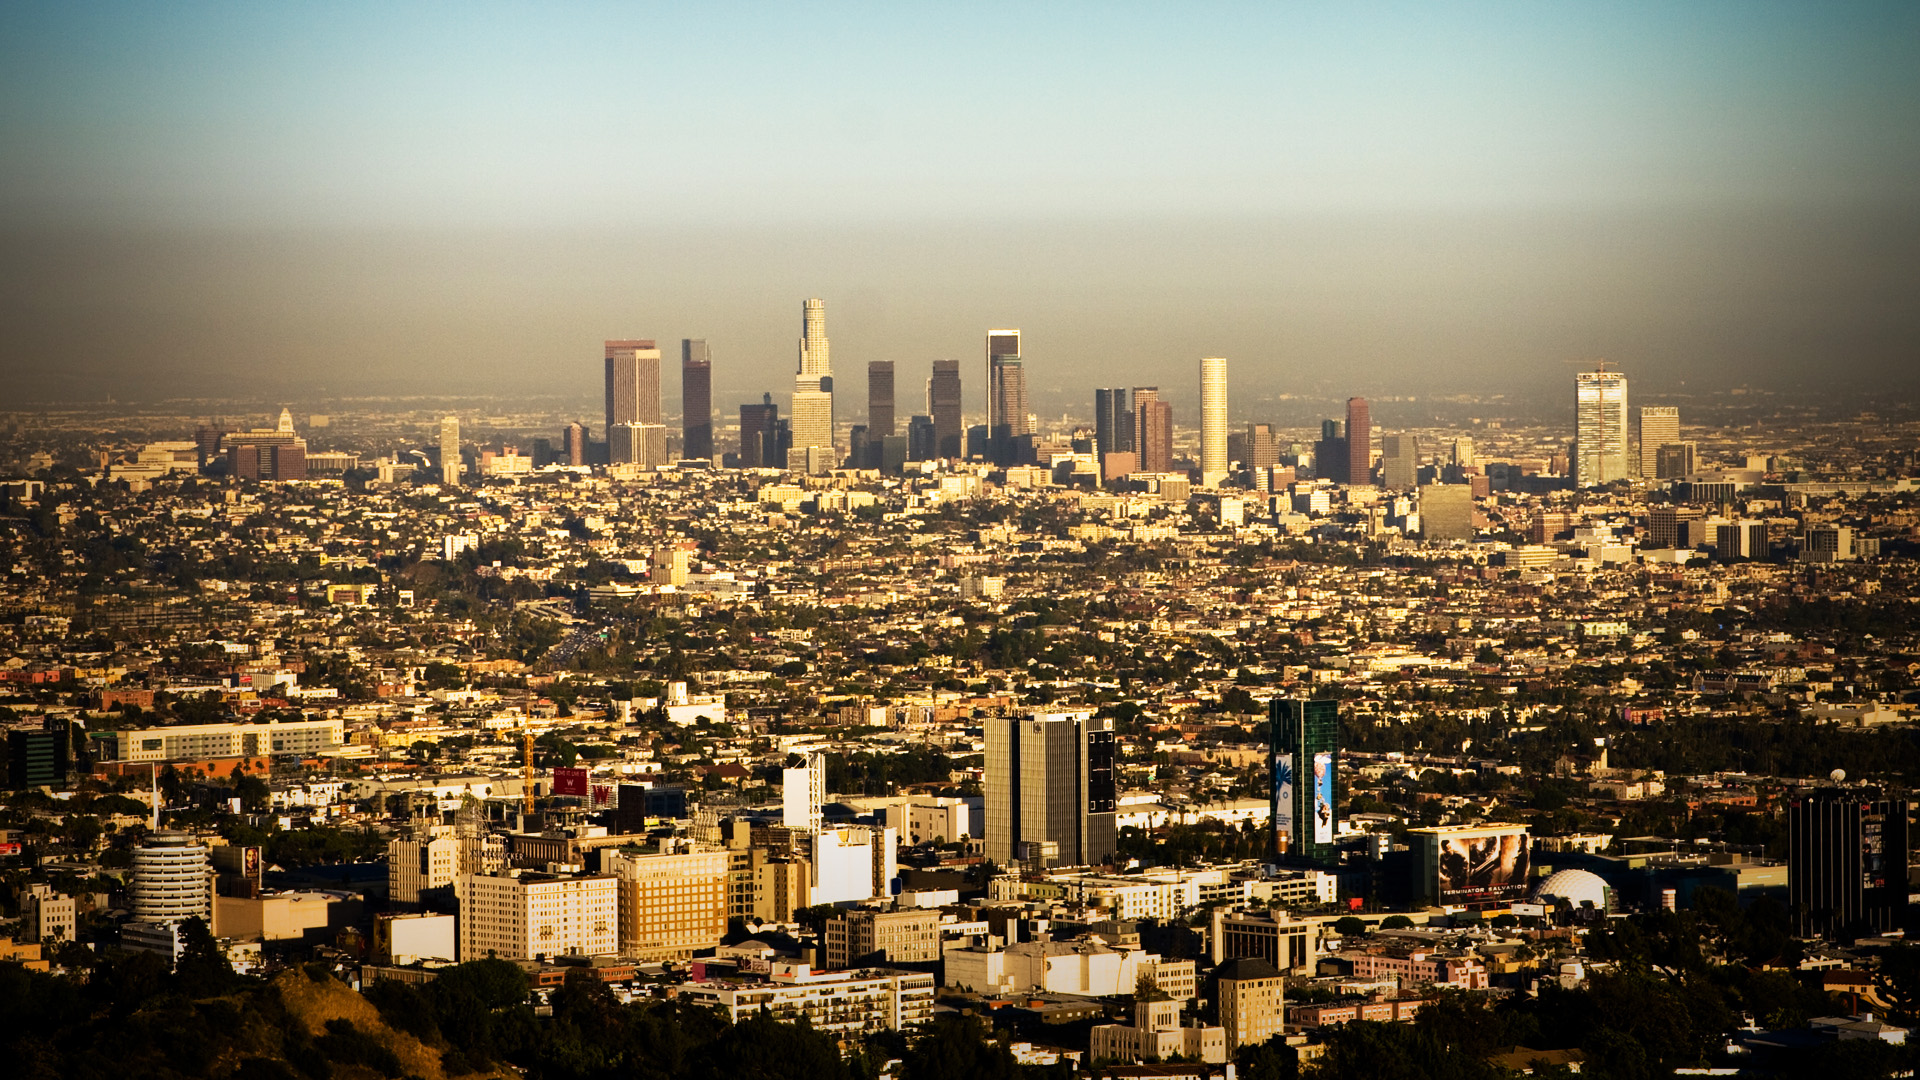 Free Download Los Angeles City Wallpaper Hd 4 Hd Background